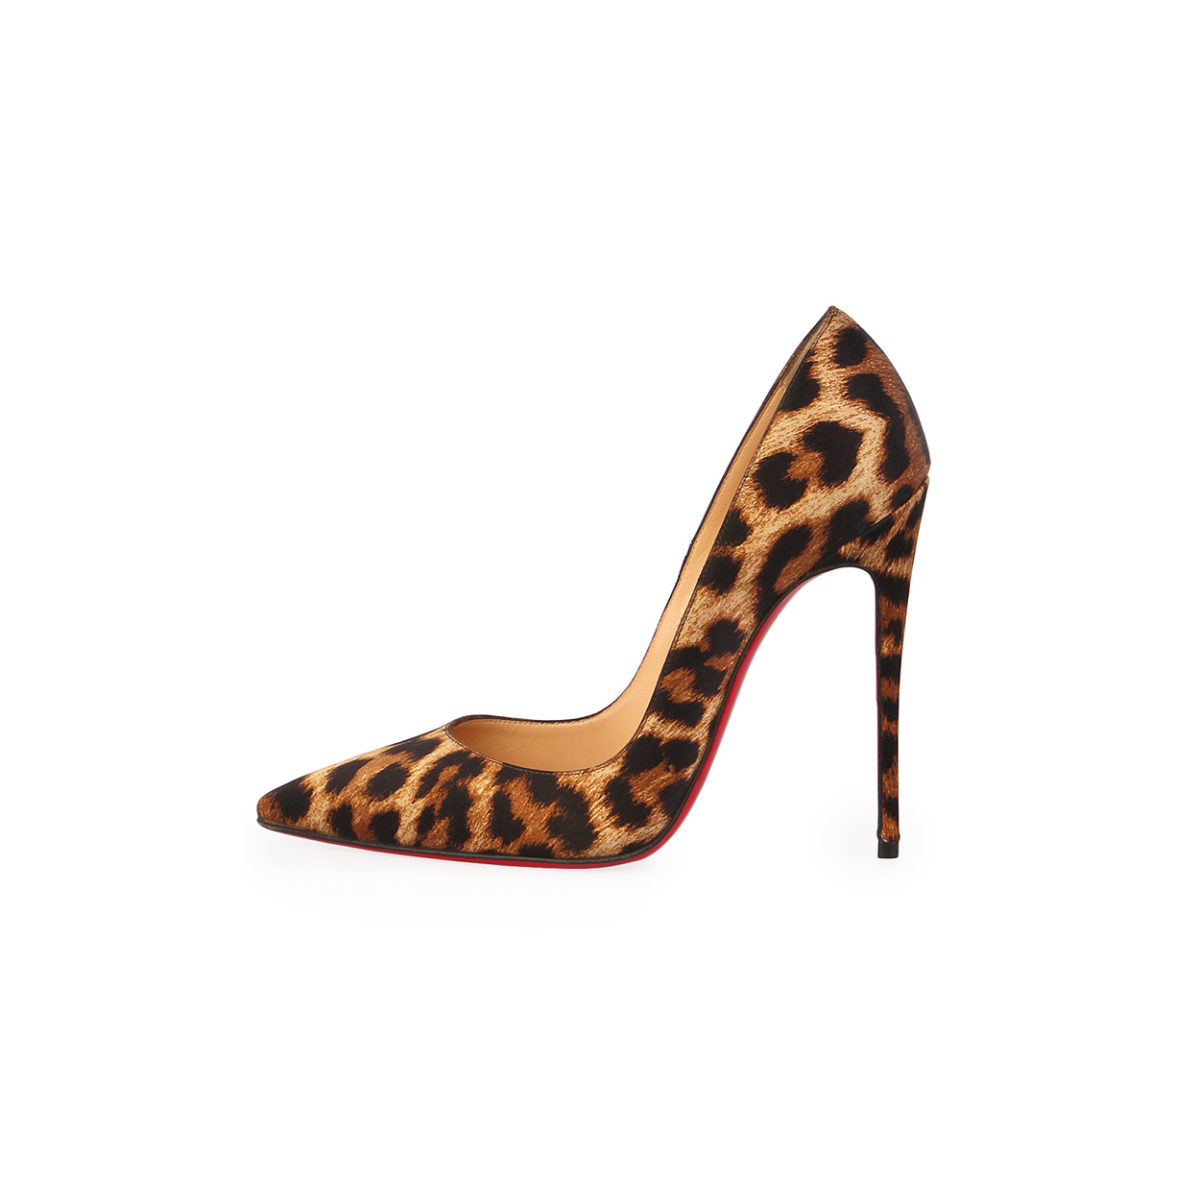 0671555bc82 CHRISTIAN LOUBOUTIN Satin So Kate 120 Pumps Leopard Print - S  36.5 ...